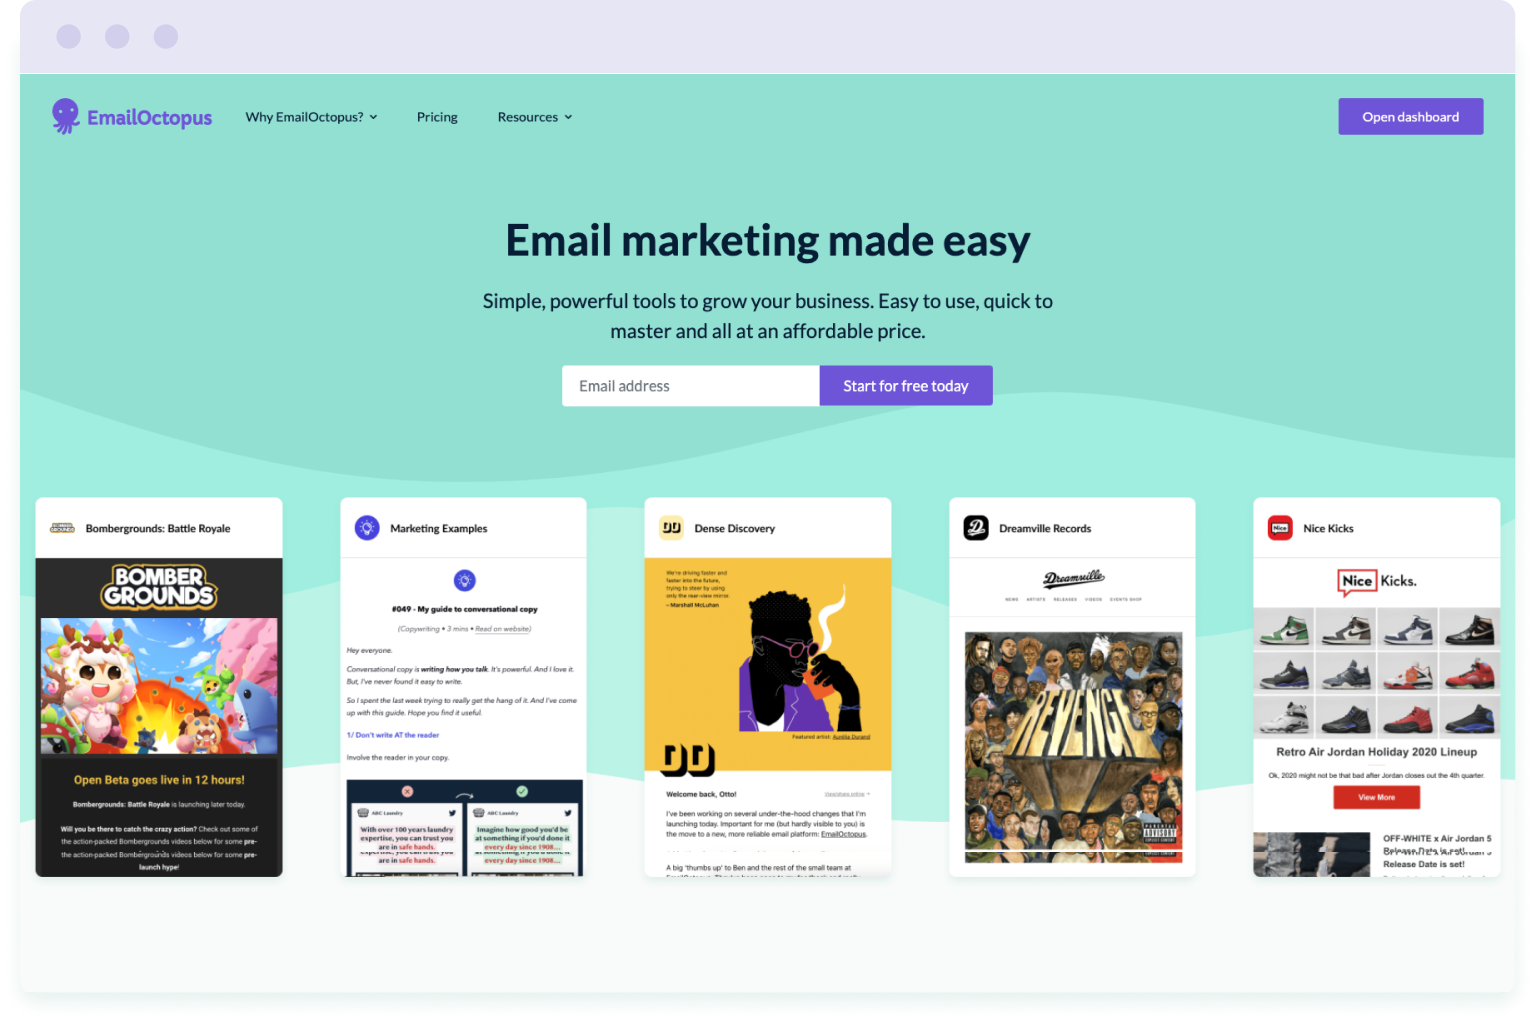 Image of the EmailOctopus website homepage. EmailOctopus is a cheaper alternative to Mailchimp.